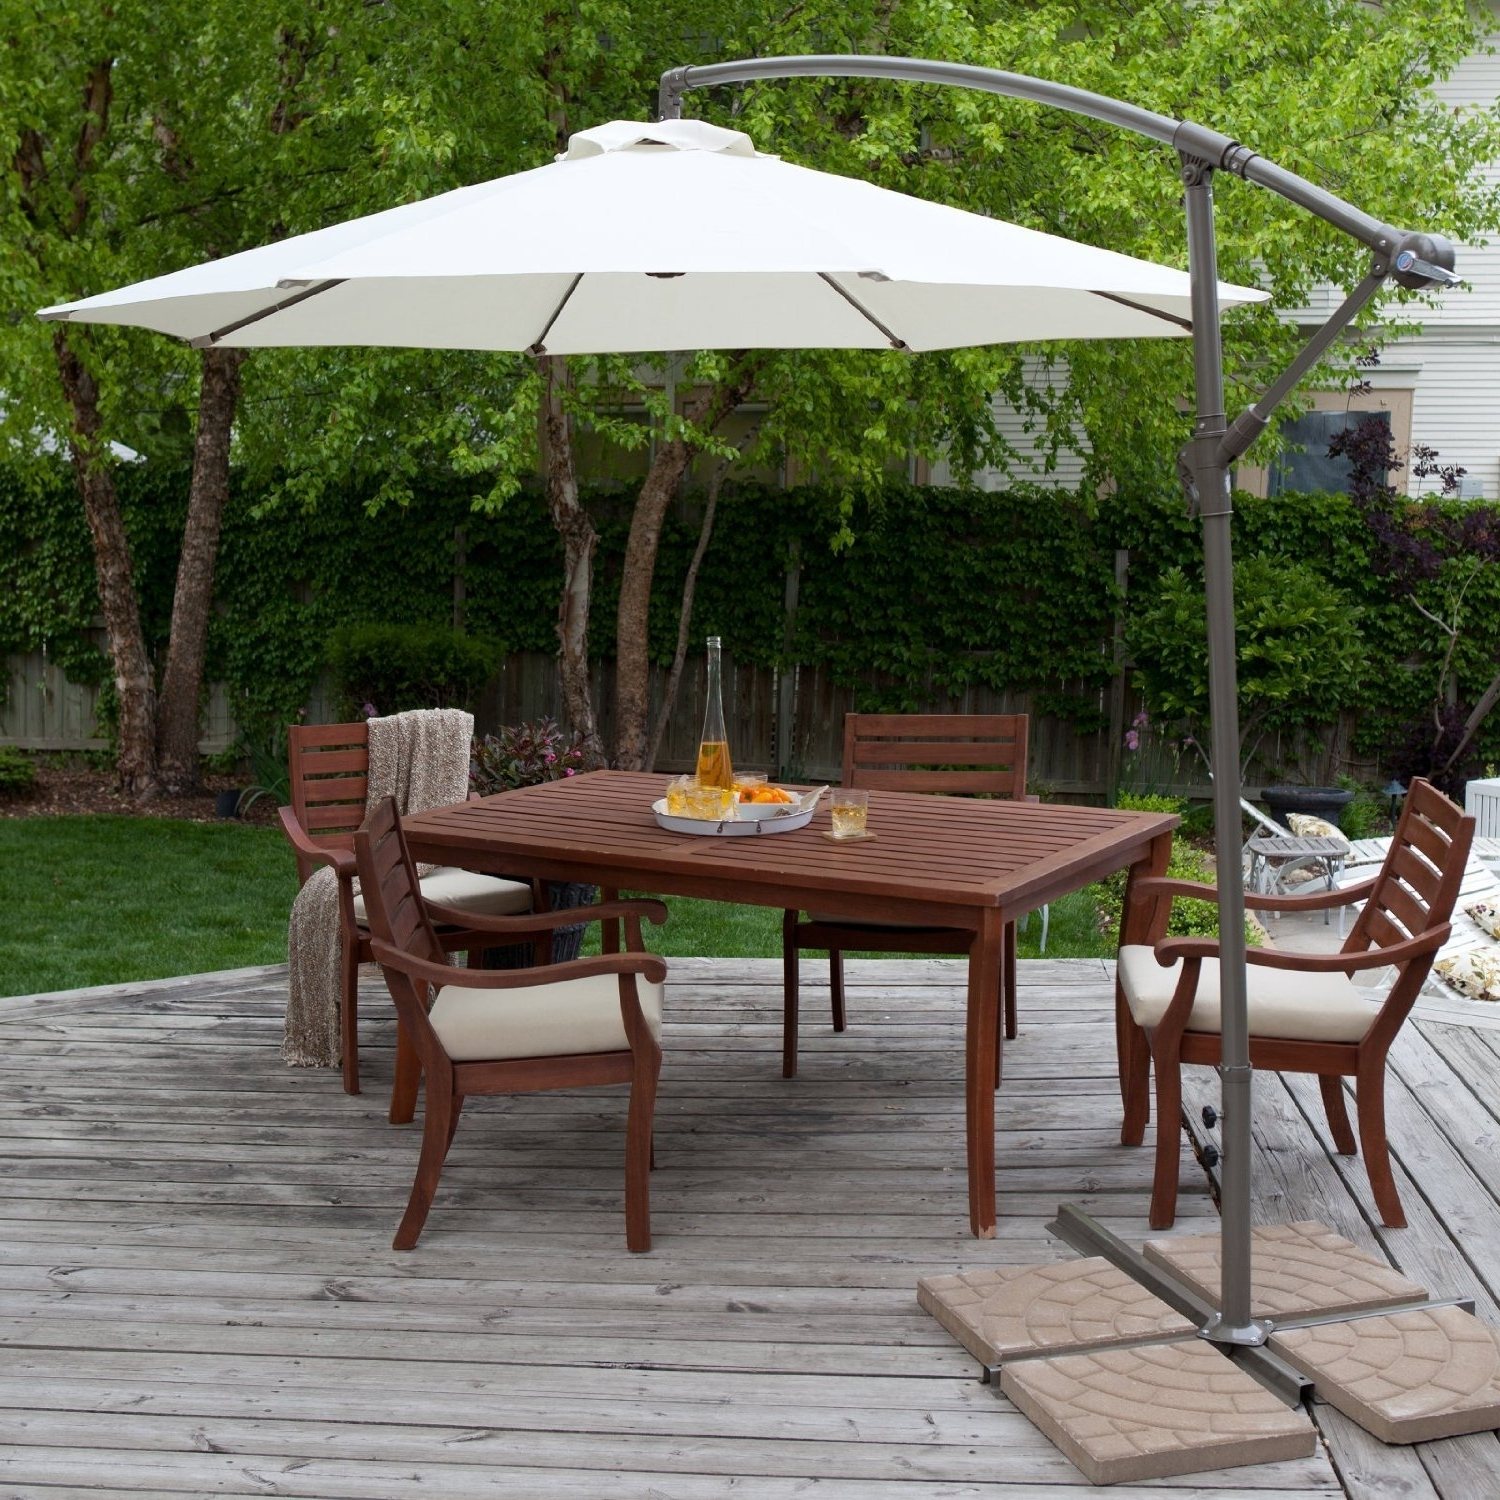 Preferred Interior : Patio Table Chairs Umbrella Set New Furniture Sets With In Patio Dining Sets With Umbrellas (View 11 of 20)